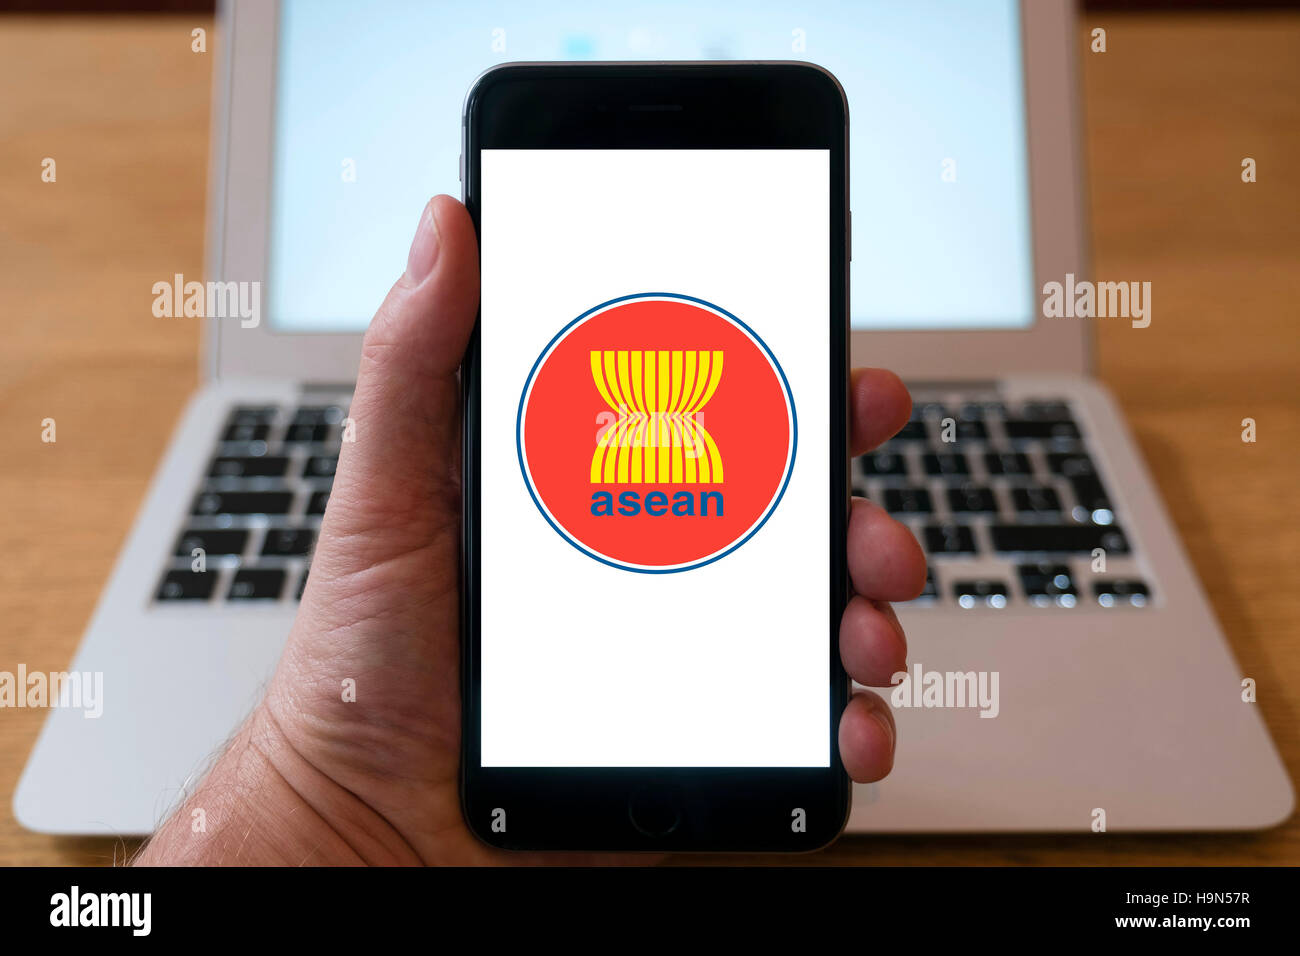 ASEAN financial organisation homepage on iPhone smart phone mobile phone - Stock Image